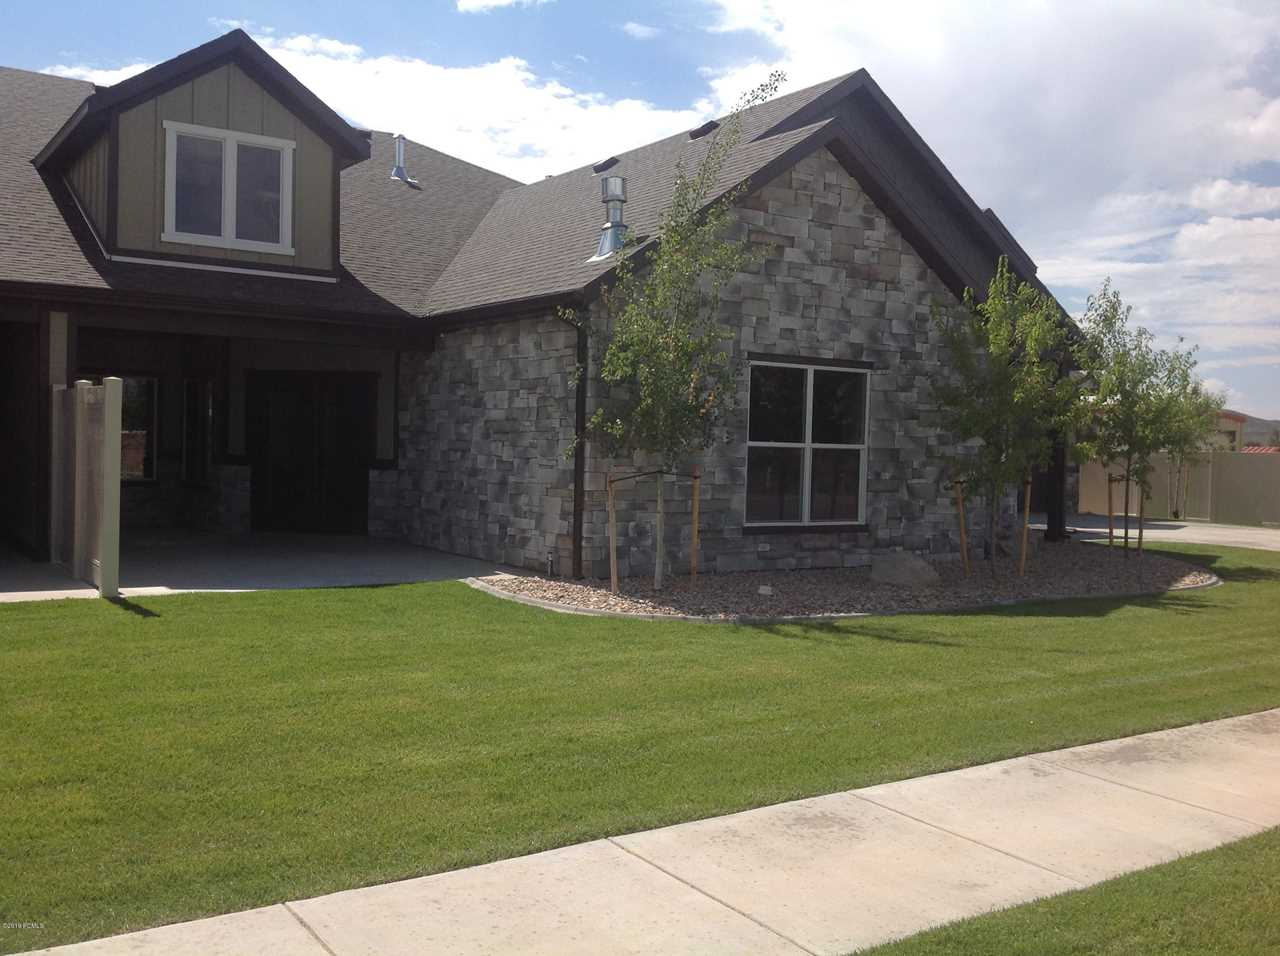 338 E 370 South Kamas, UT 84036 | MLS 11901508 Photo 1